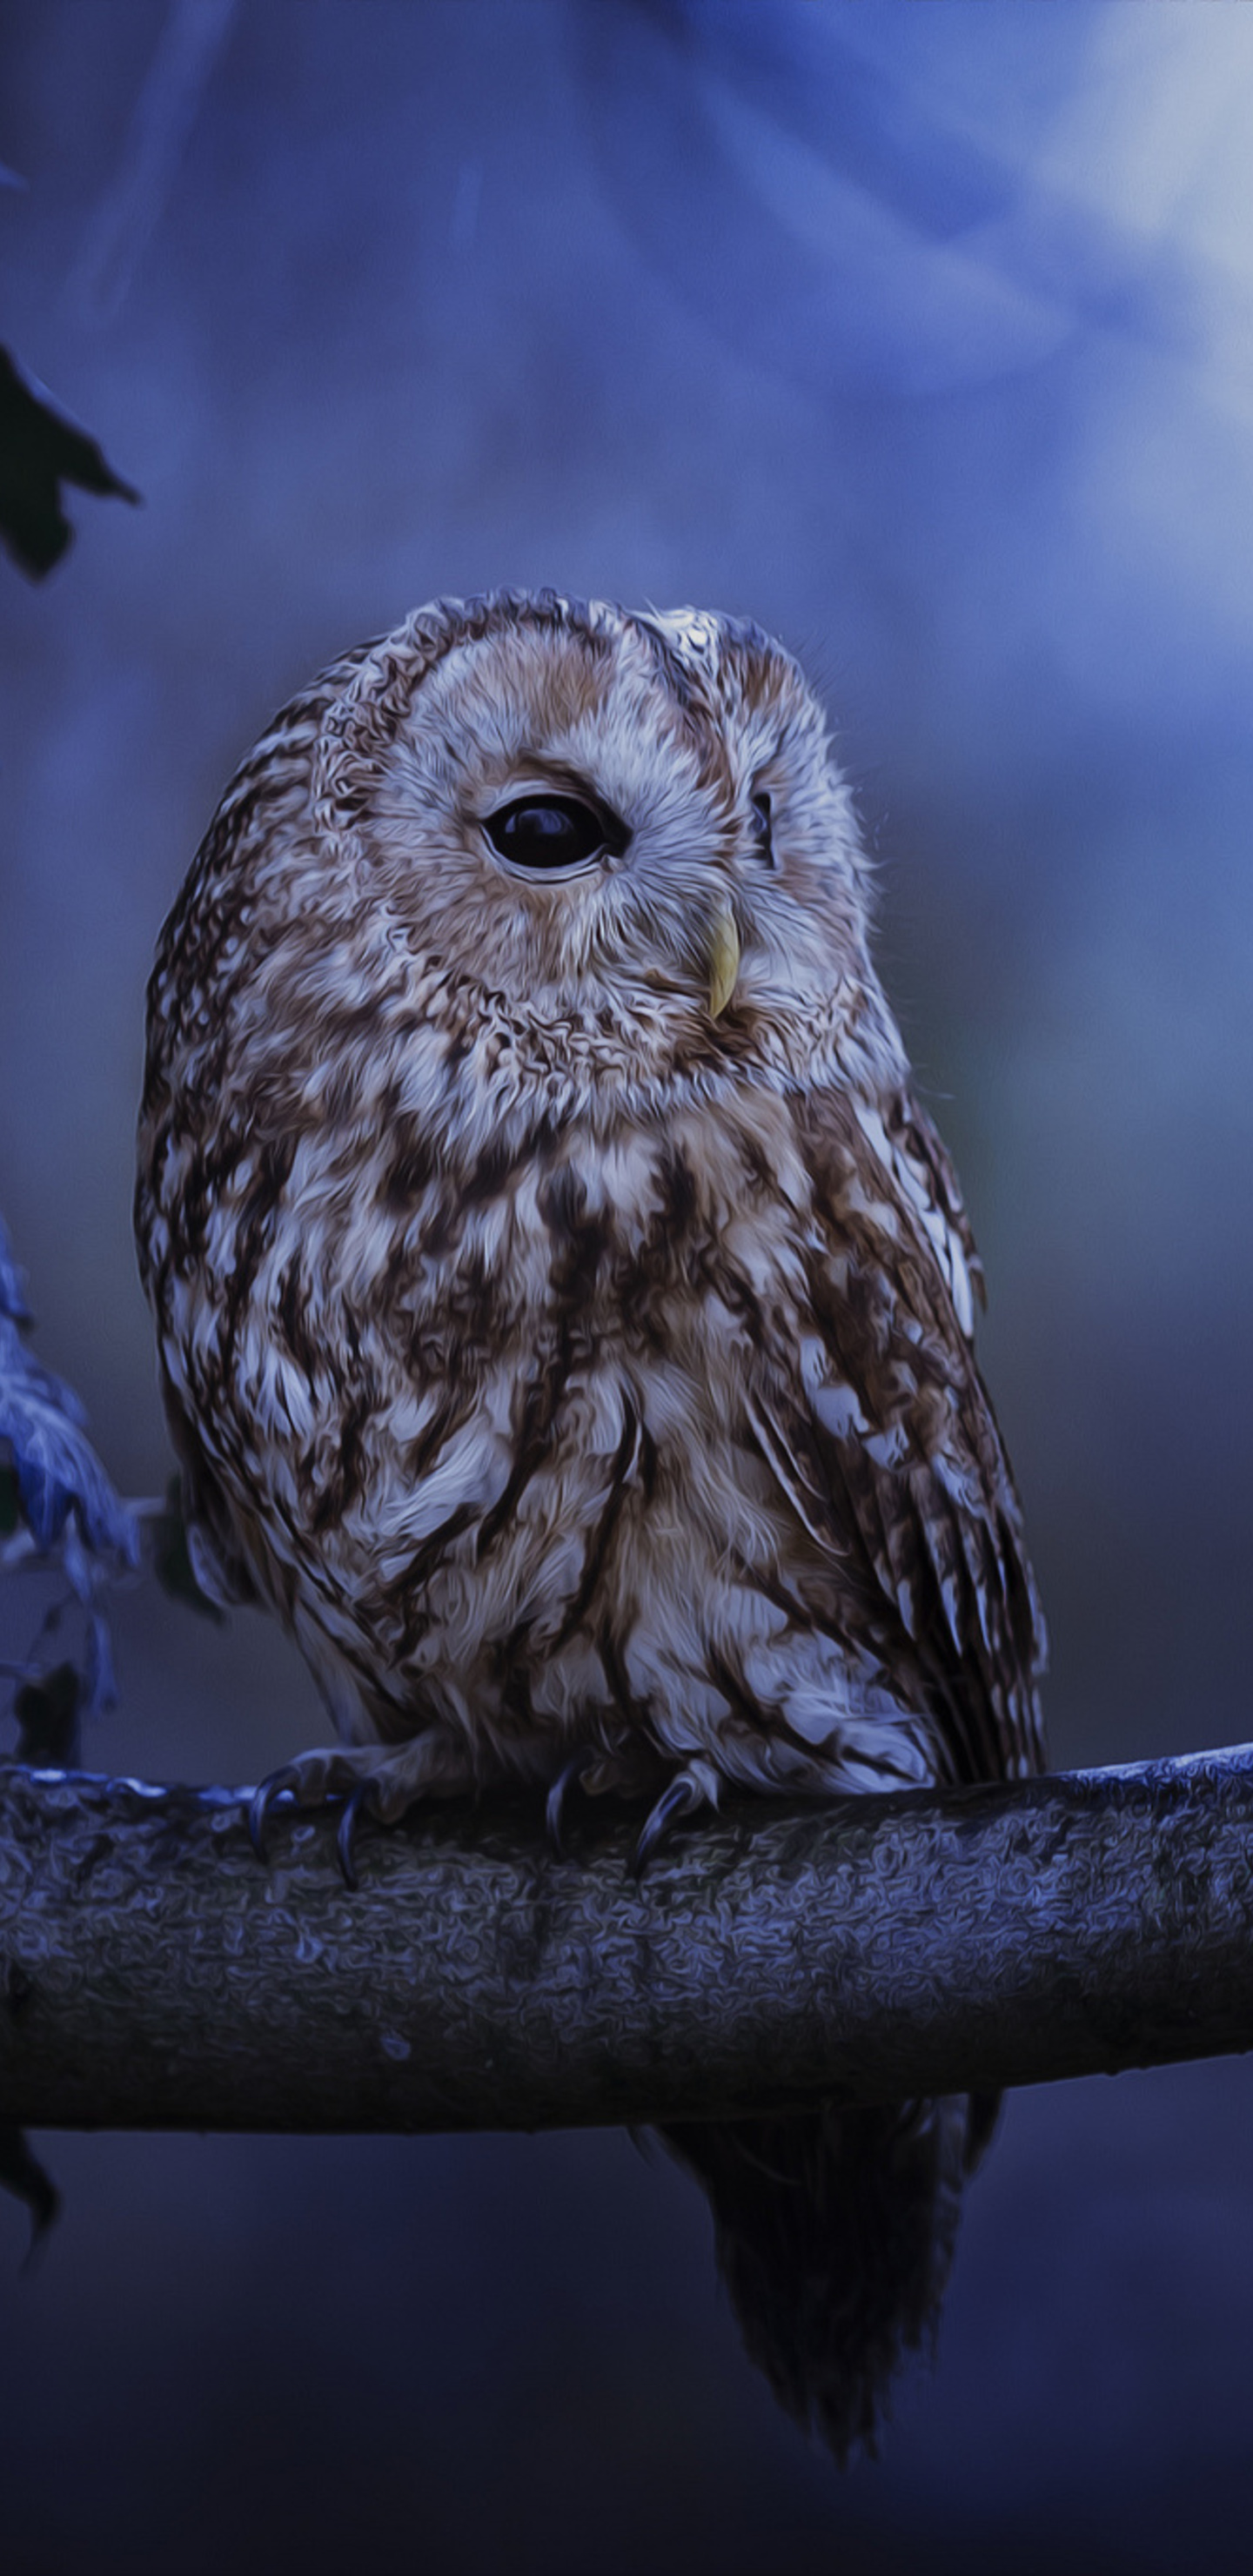 1440x2960 tawny owl in moonlight samsung galaxy note 98 s9s8s8